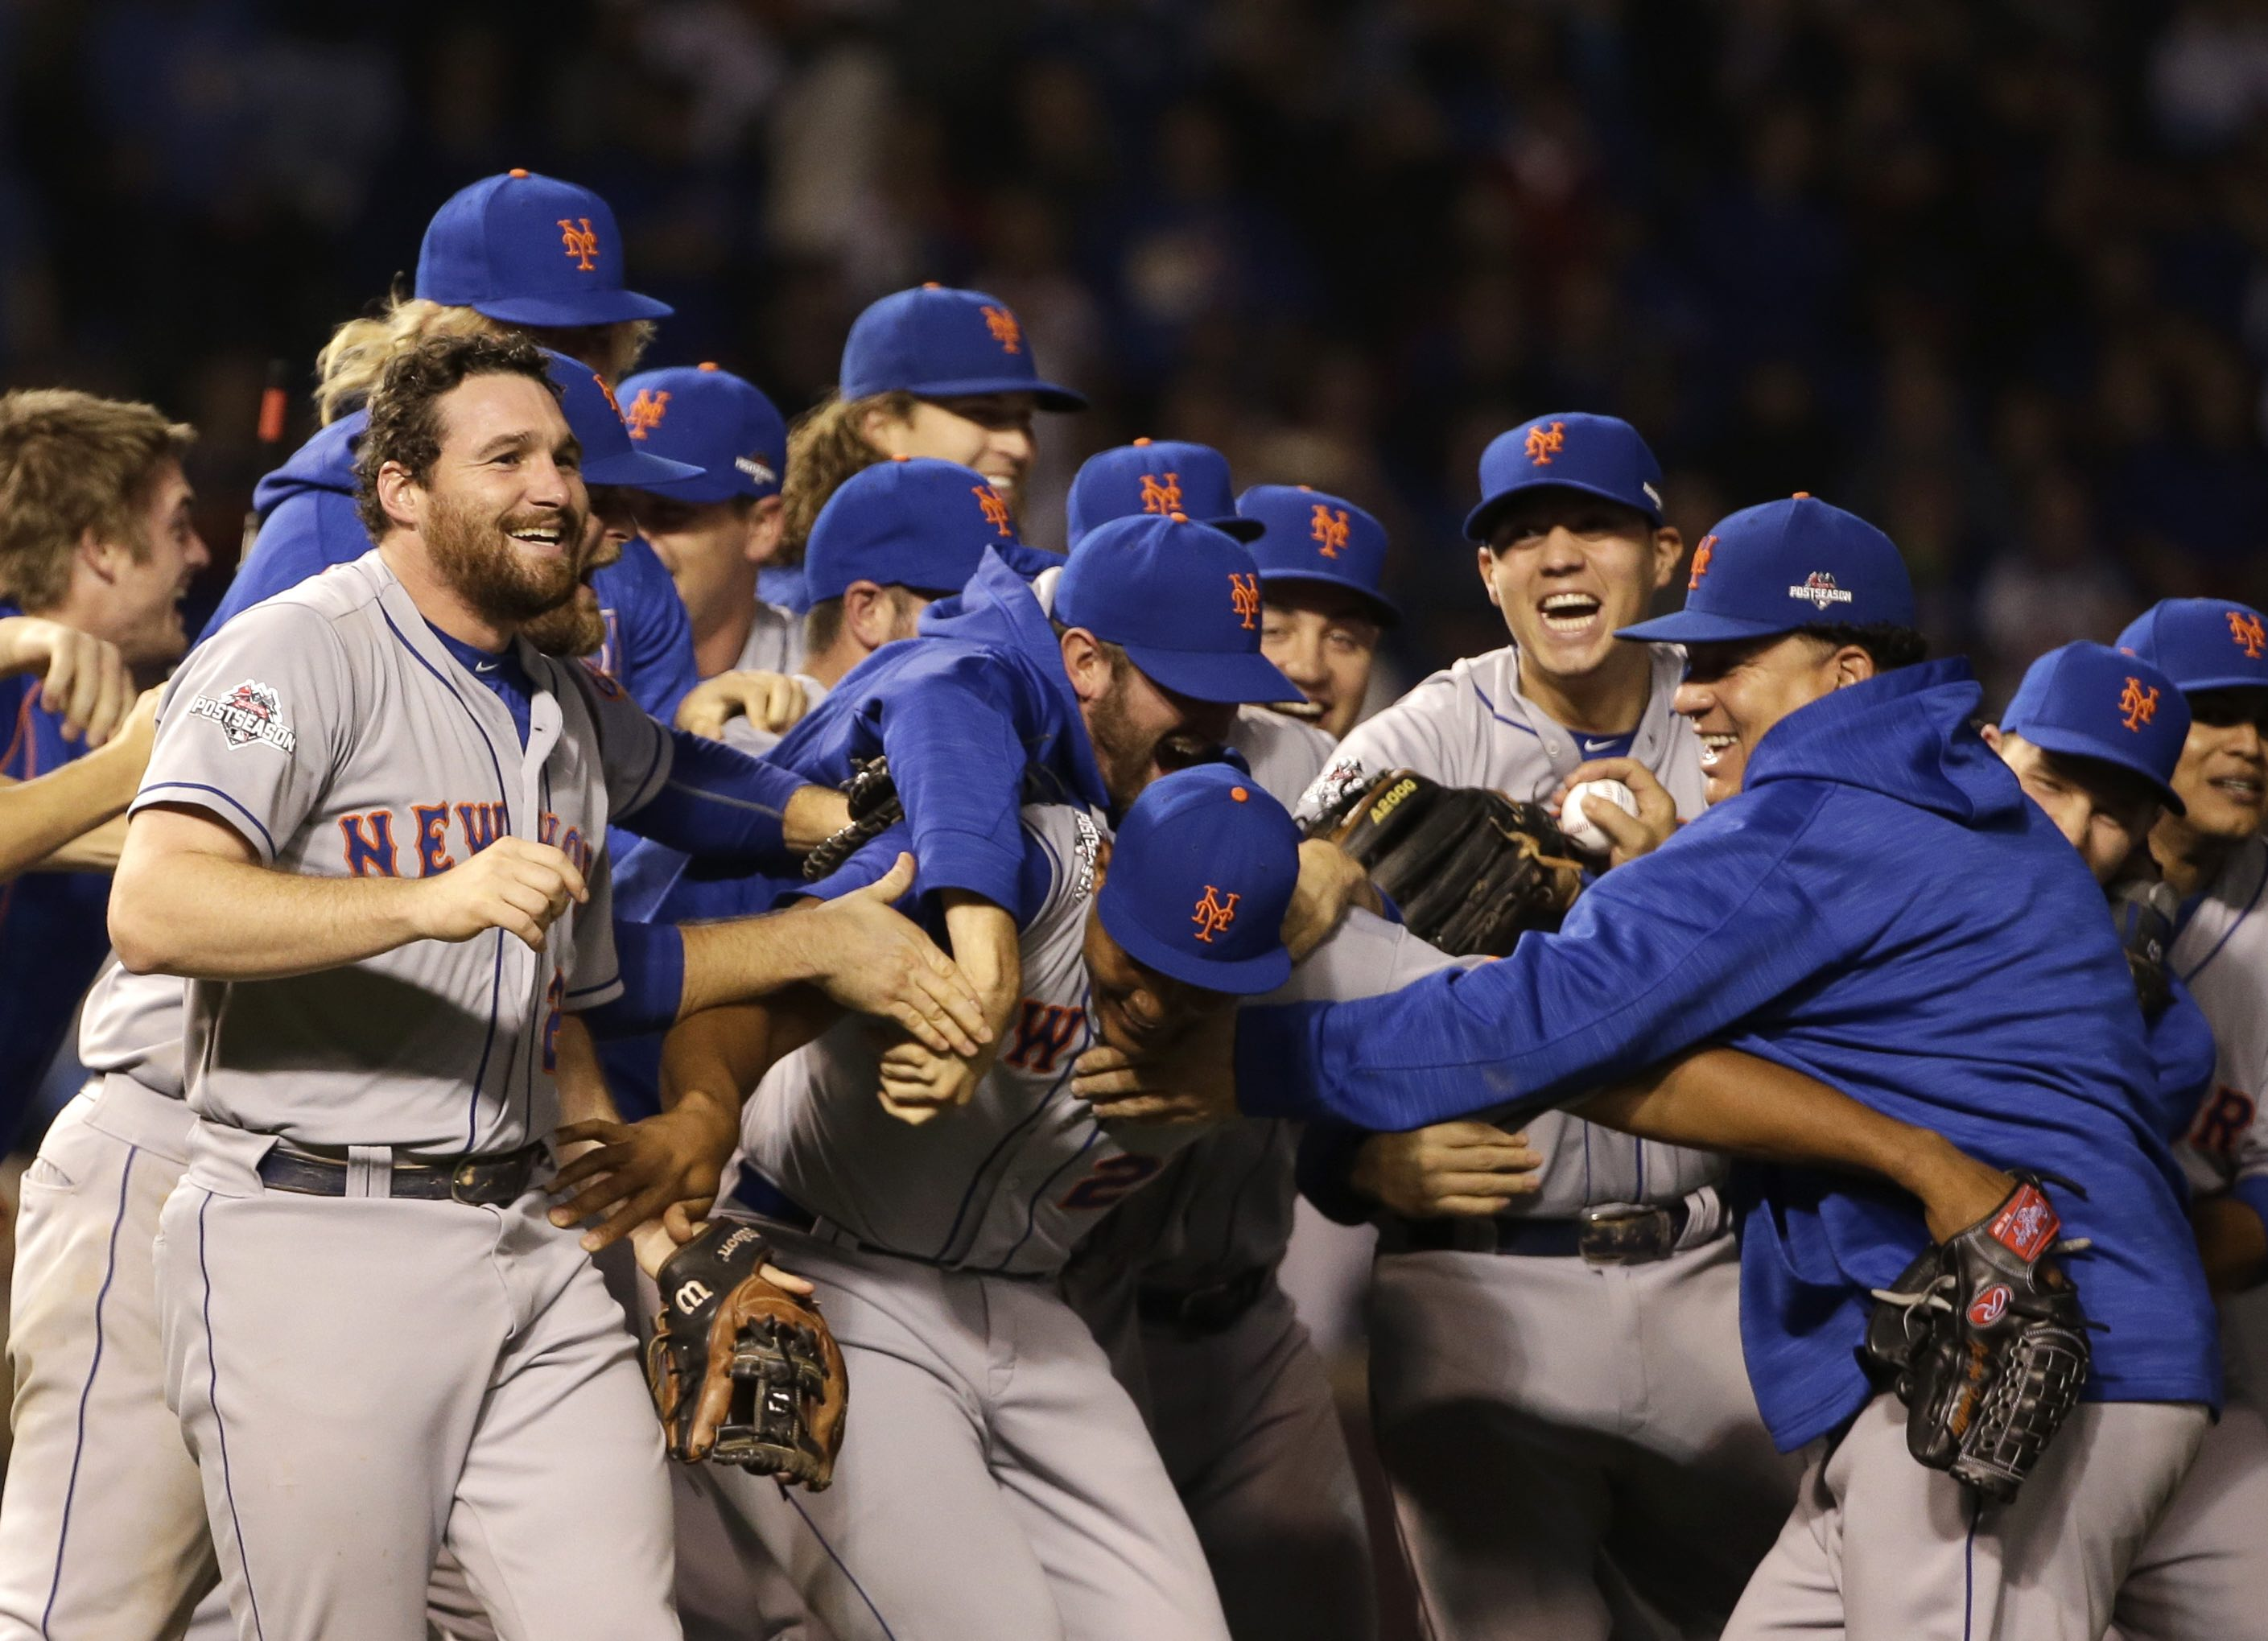 The New York Mets celebrate after Game 4 of the National League baseball championship series against the Chicago Cubs Wednesday, Oct. 21, 2015, in Chicago. The Mets won 8-3 to advance to the World Series. (AP Photo/David J. Phillip)